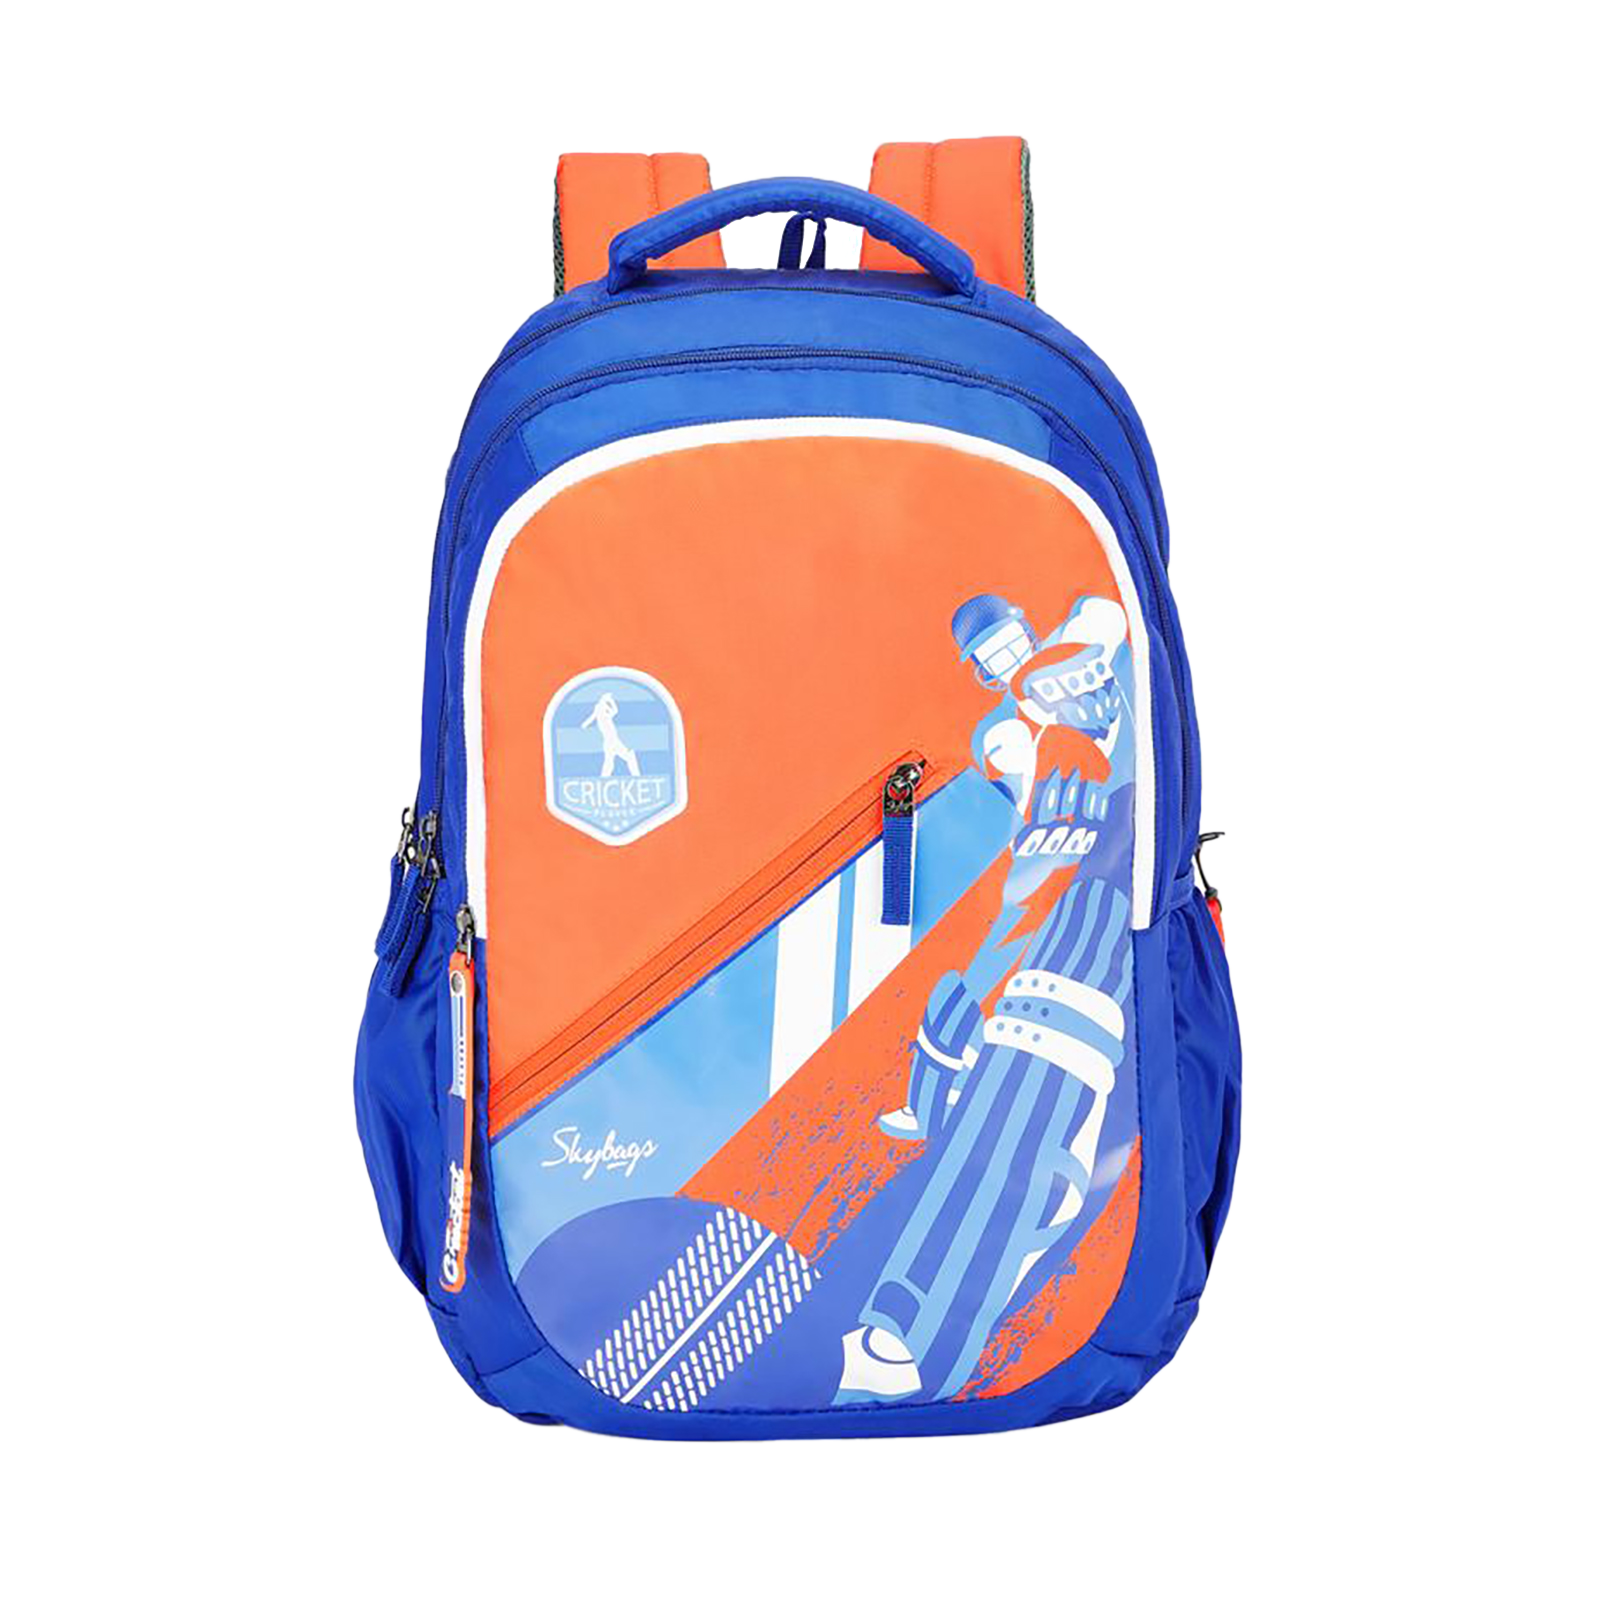 Sky Bags Astro Plus 04 Cricket 34 Litres Mini Gucci Backpack (Bottle Safety Lock, BPASP4CKT, Blue)_1